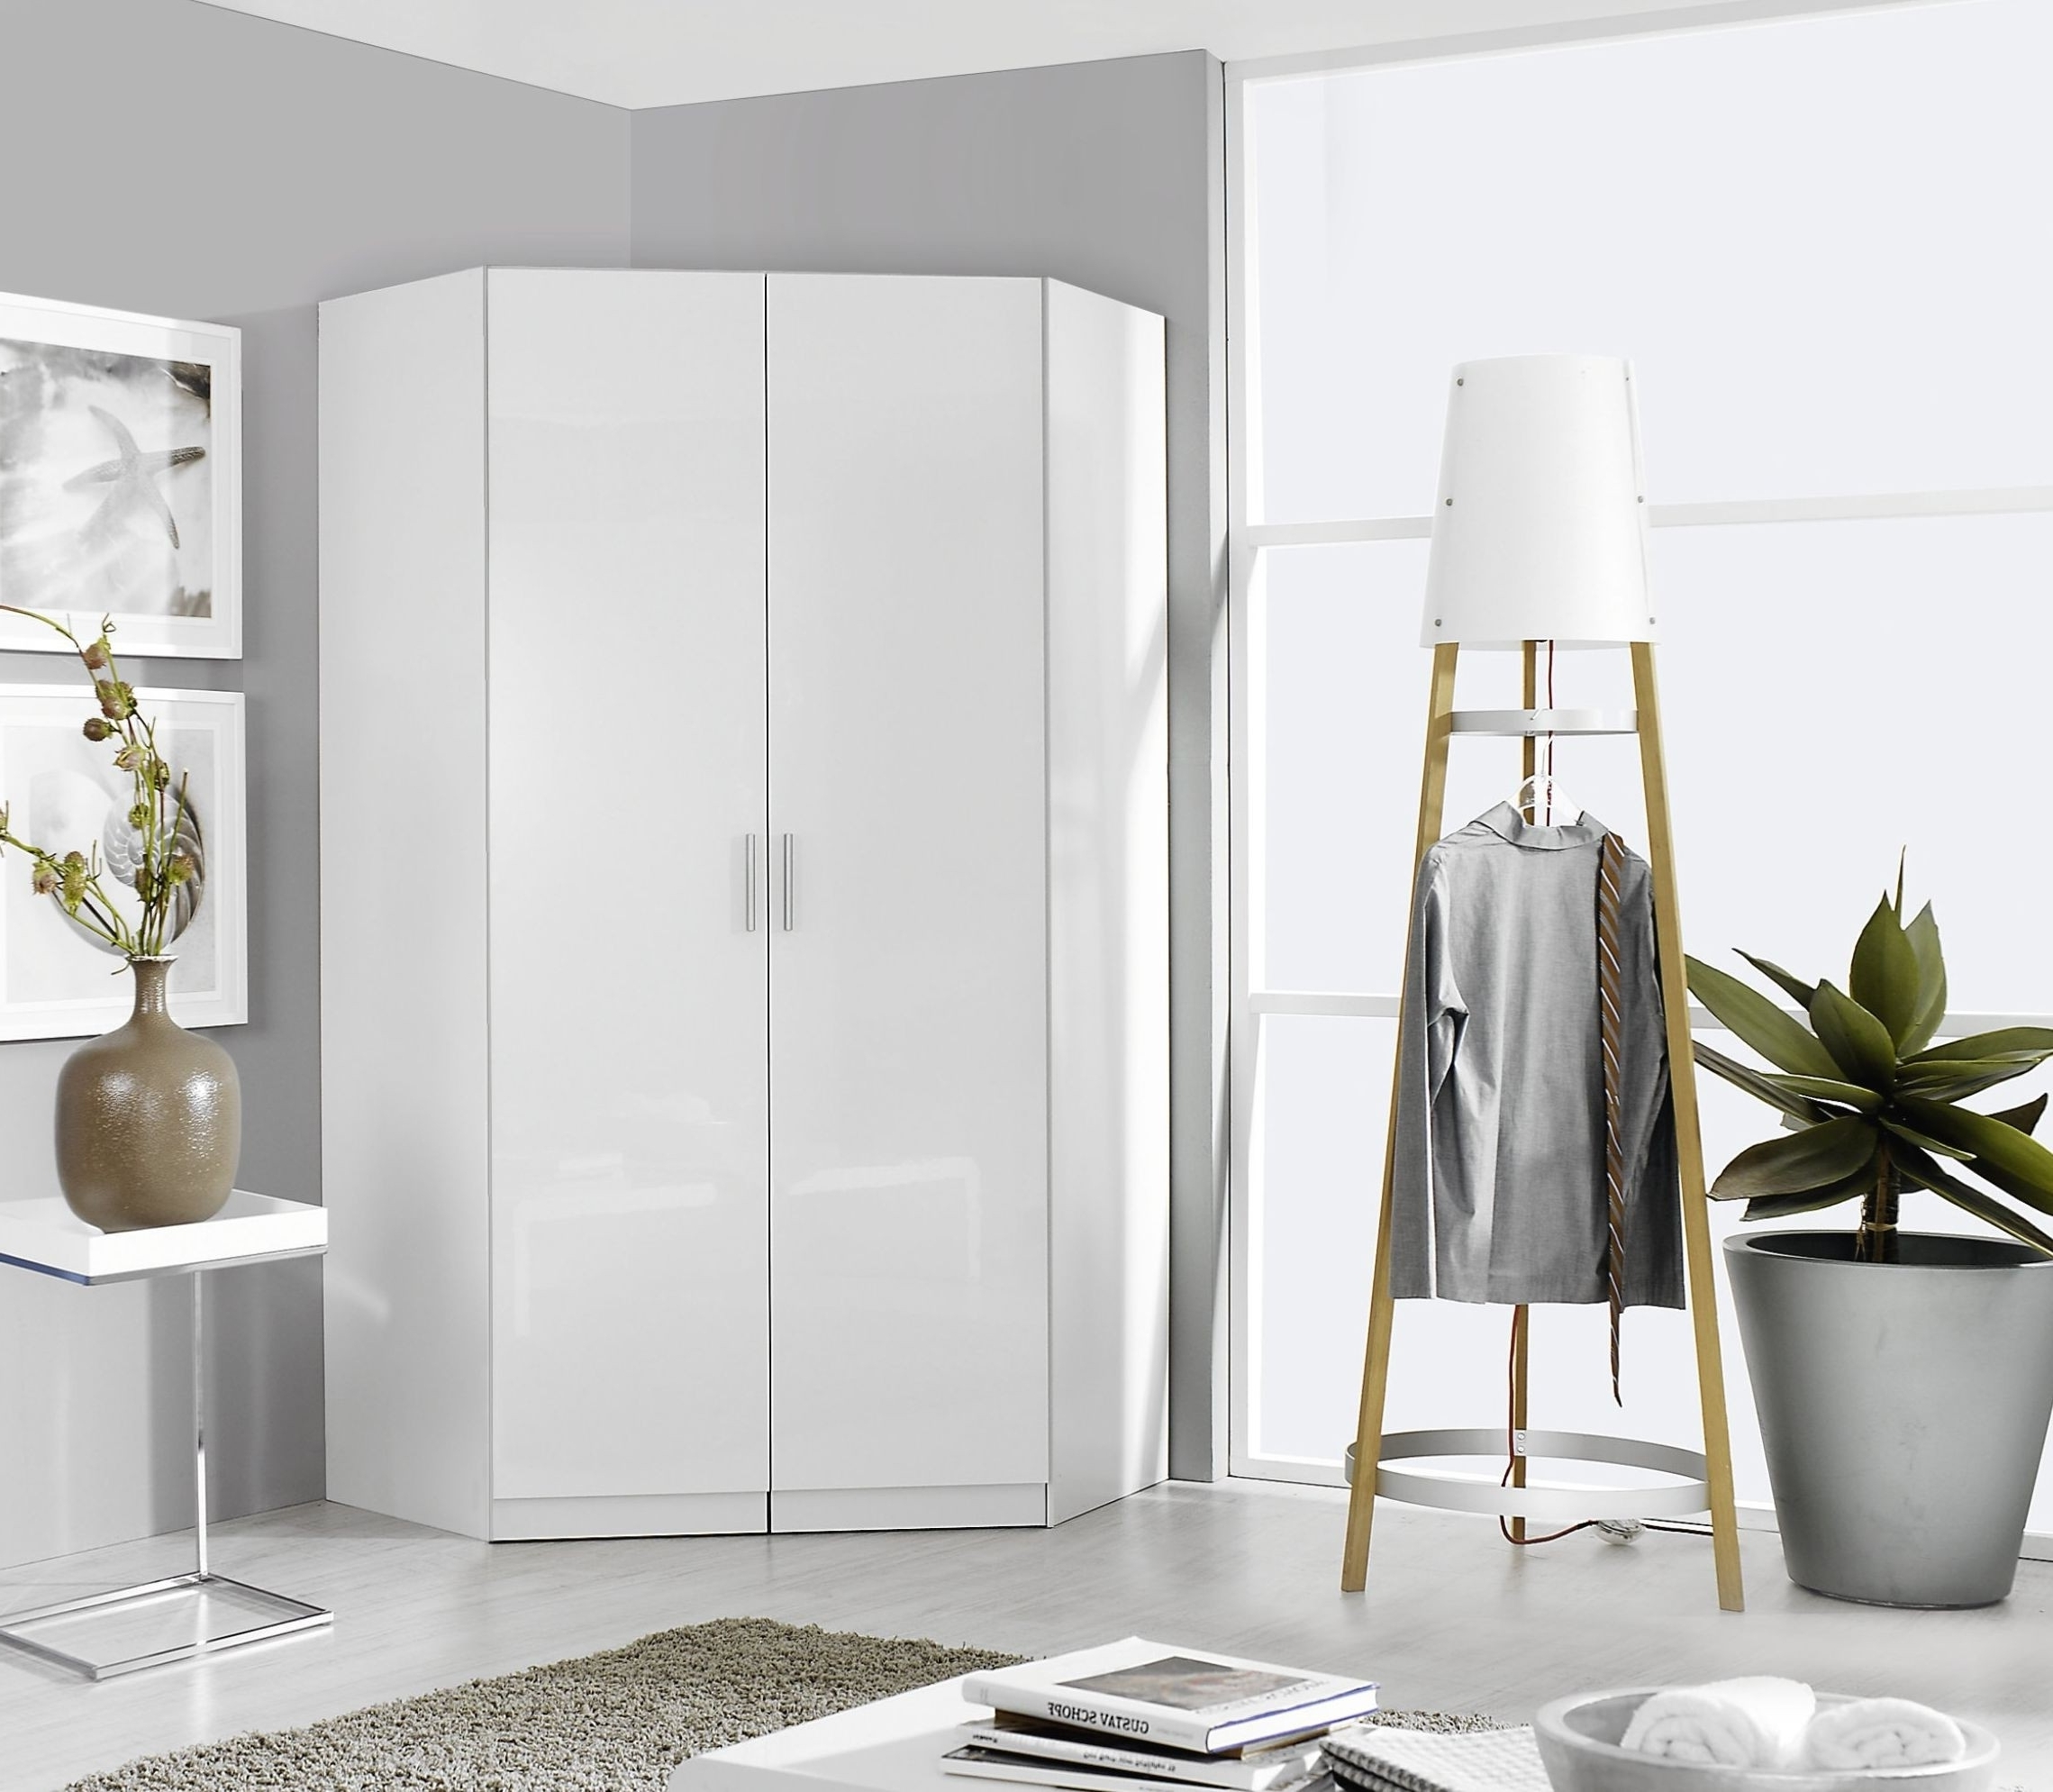 Buy Rauch Celle Corner Wardrobe Online Cfs Uk Inspirational White For Well Known White Gloss Corner Wardrobes (View 2 of 15)